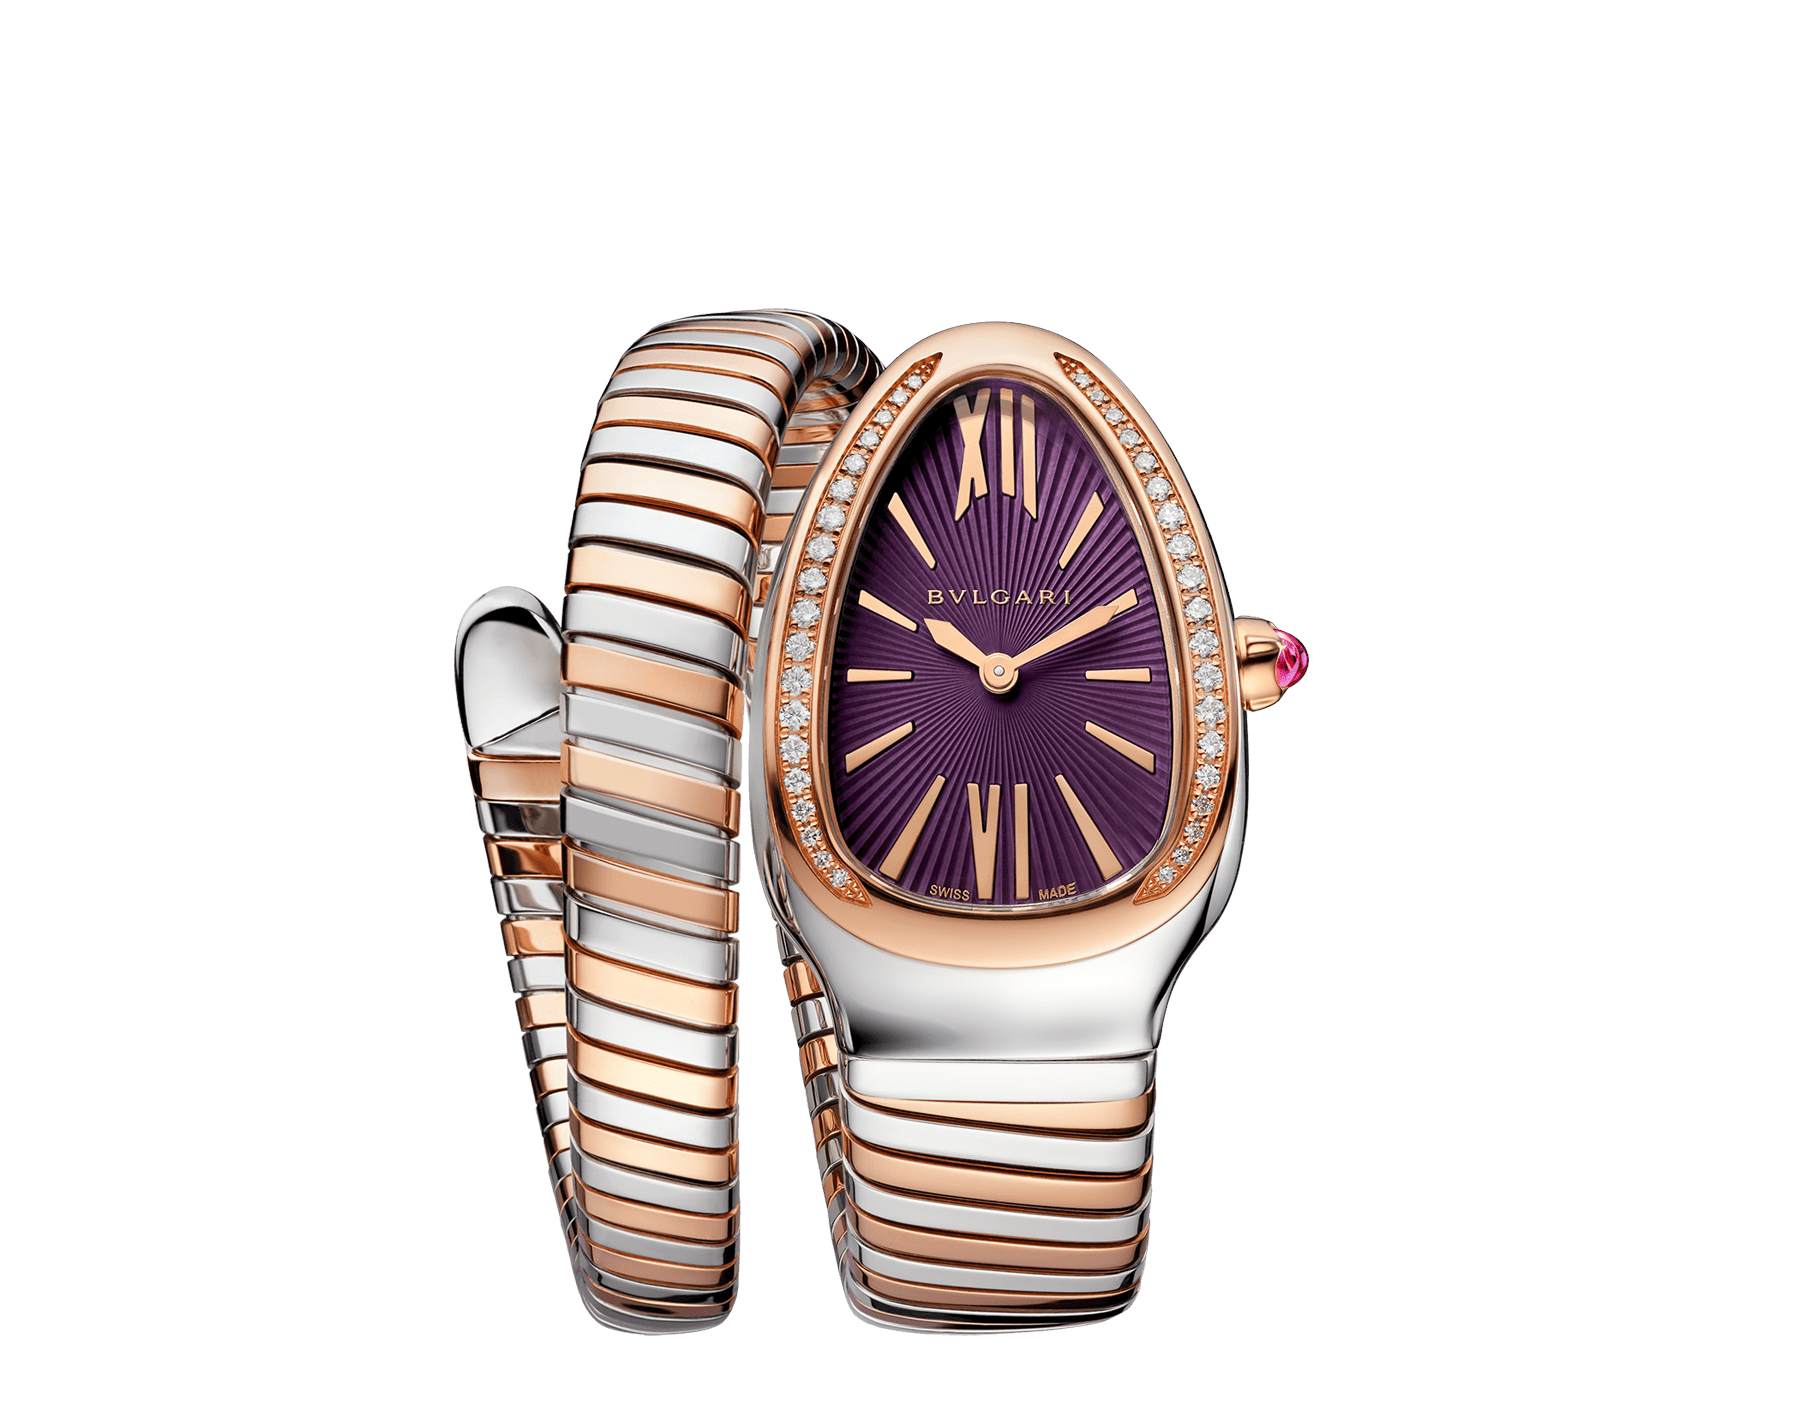 Serpenti Tubogas single spiral watch with stainless steel case, 18 kt rose gold bezel set with brilliant cut diamonds, violet lacquered dial, 18 kt rose gold and stainless steel bracelet. 102493 image 1